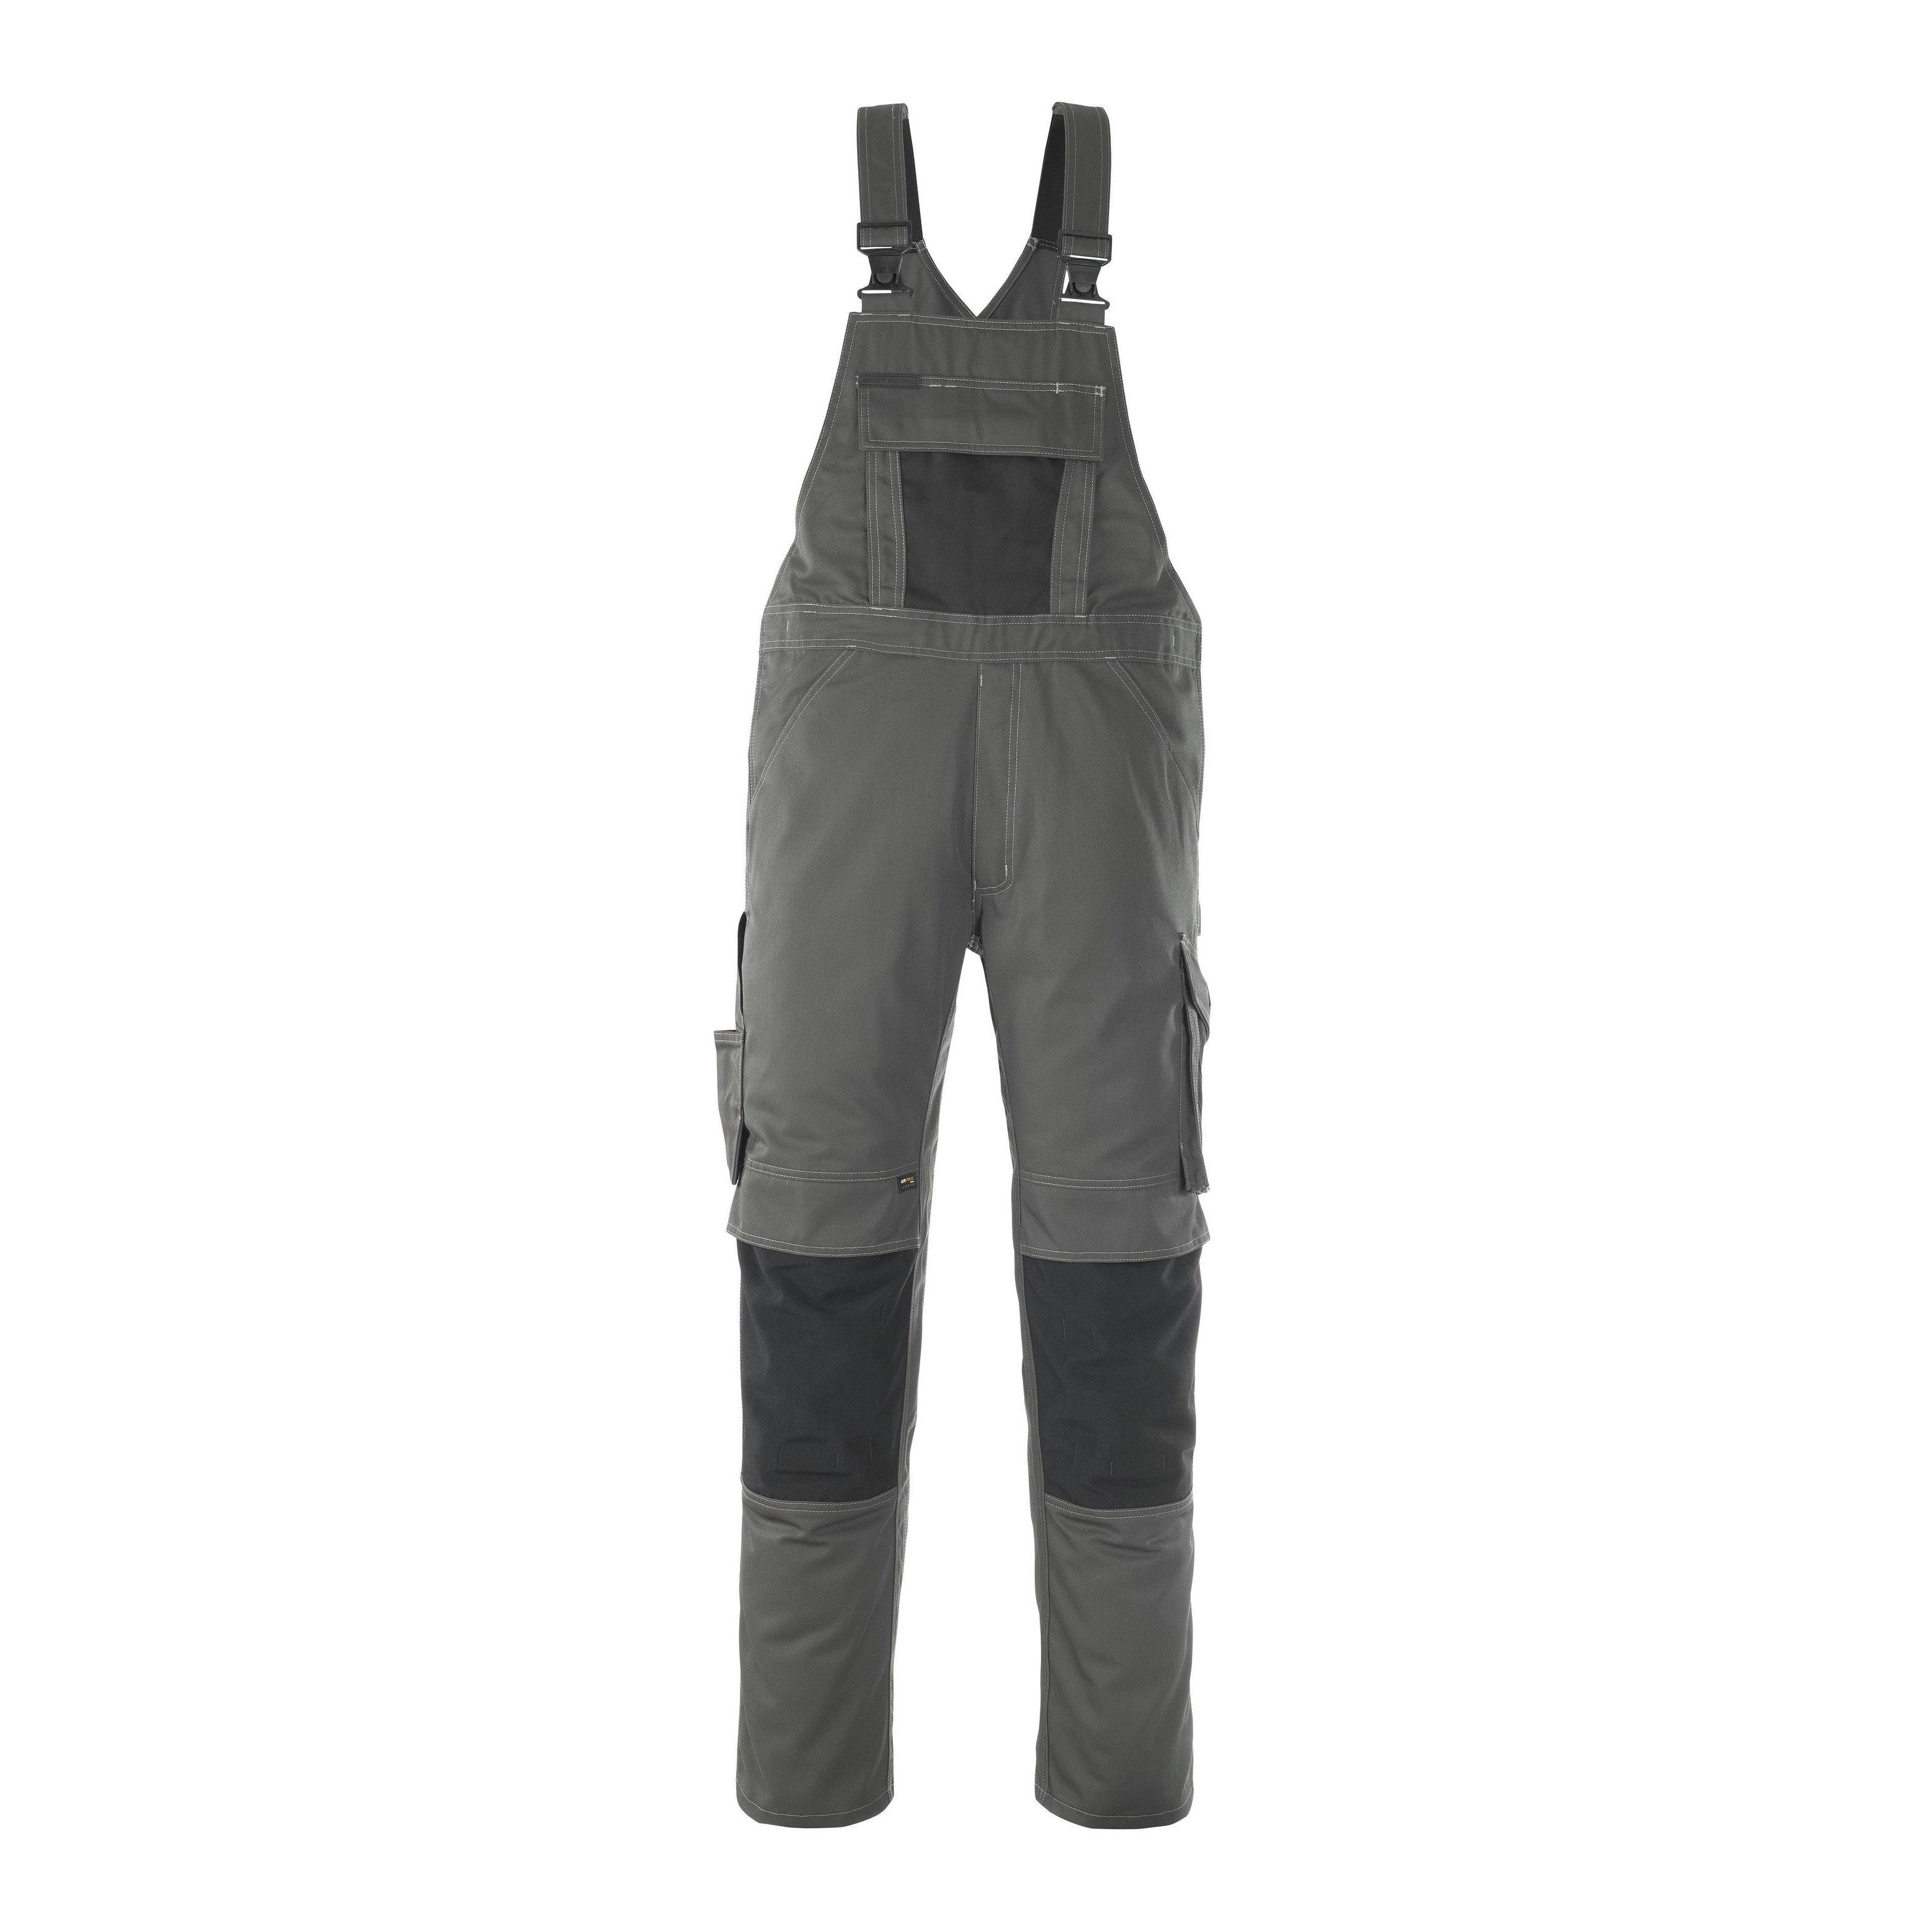 Mascot Leipzig Unique Bib & Brace With Kneepad Pockets